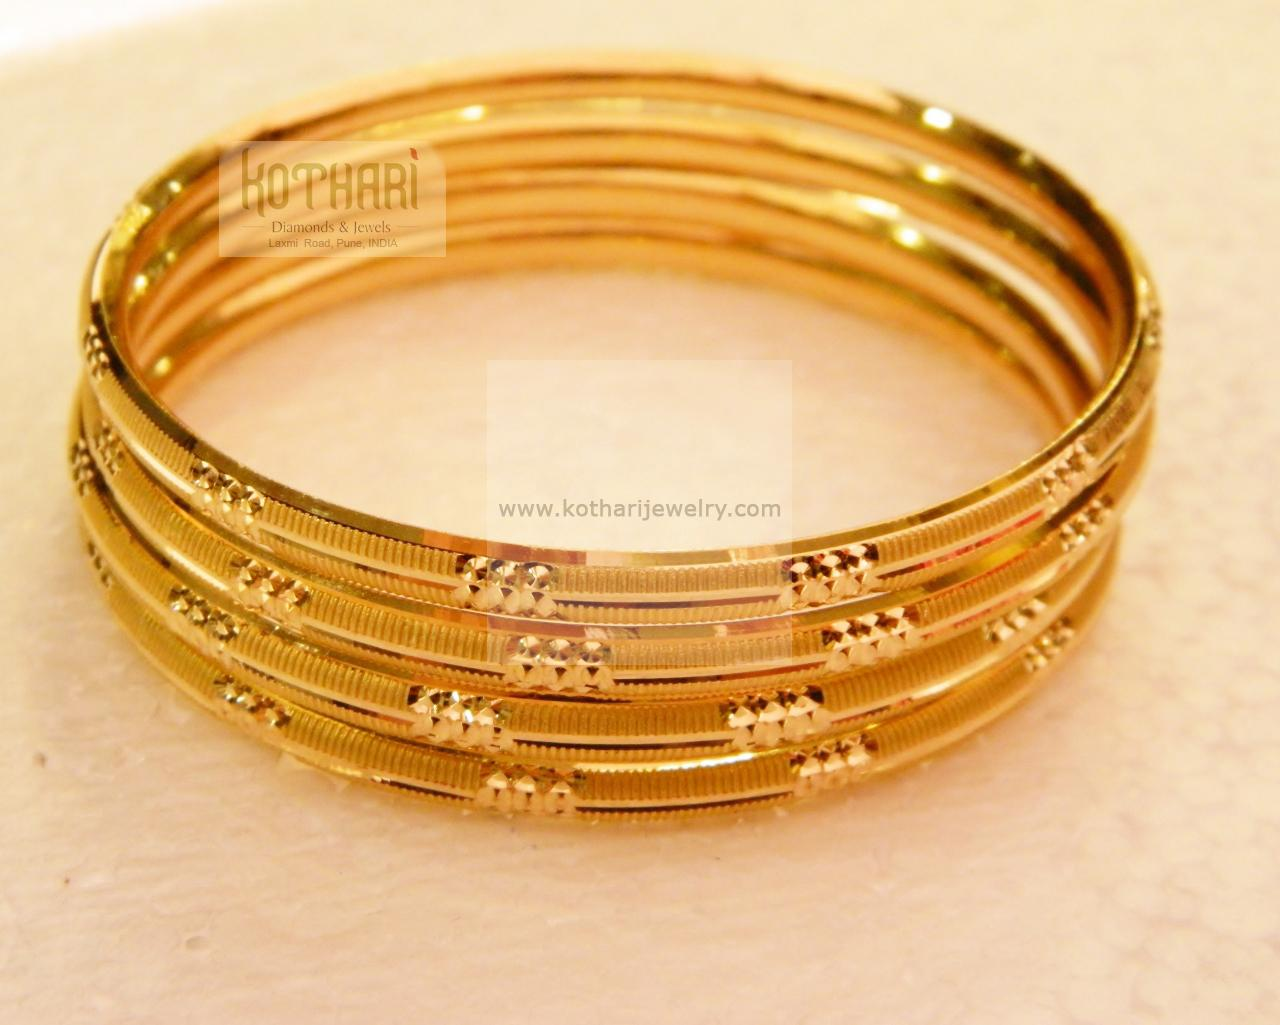 Gold Bangles - Ligth weight gold bangles, 4 piece light weight ...